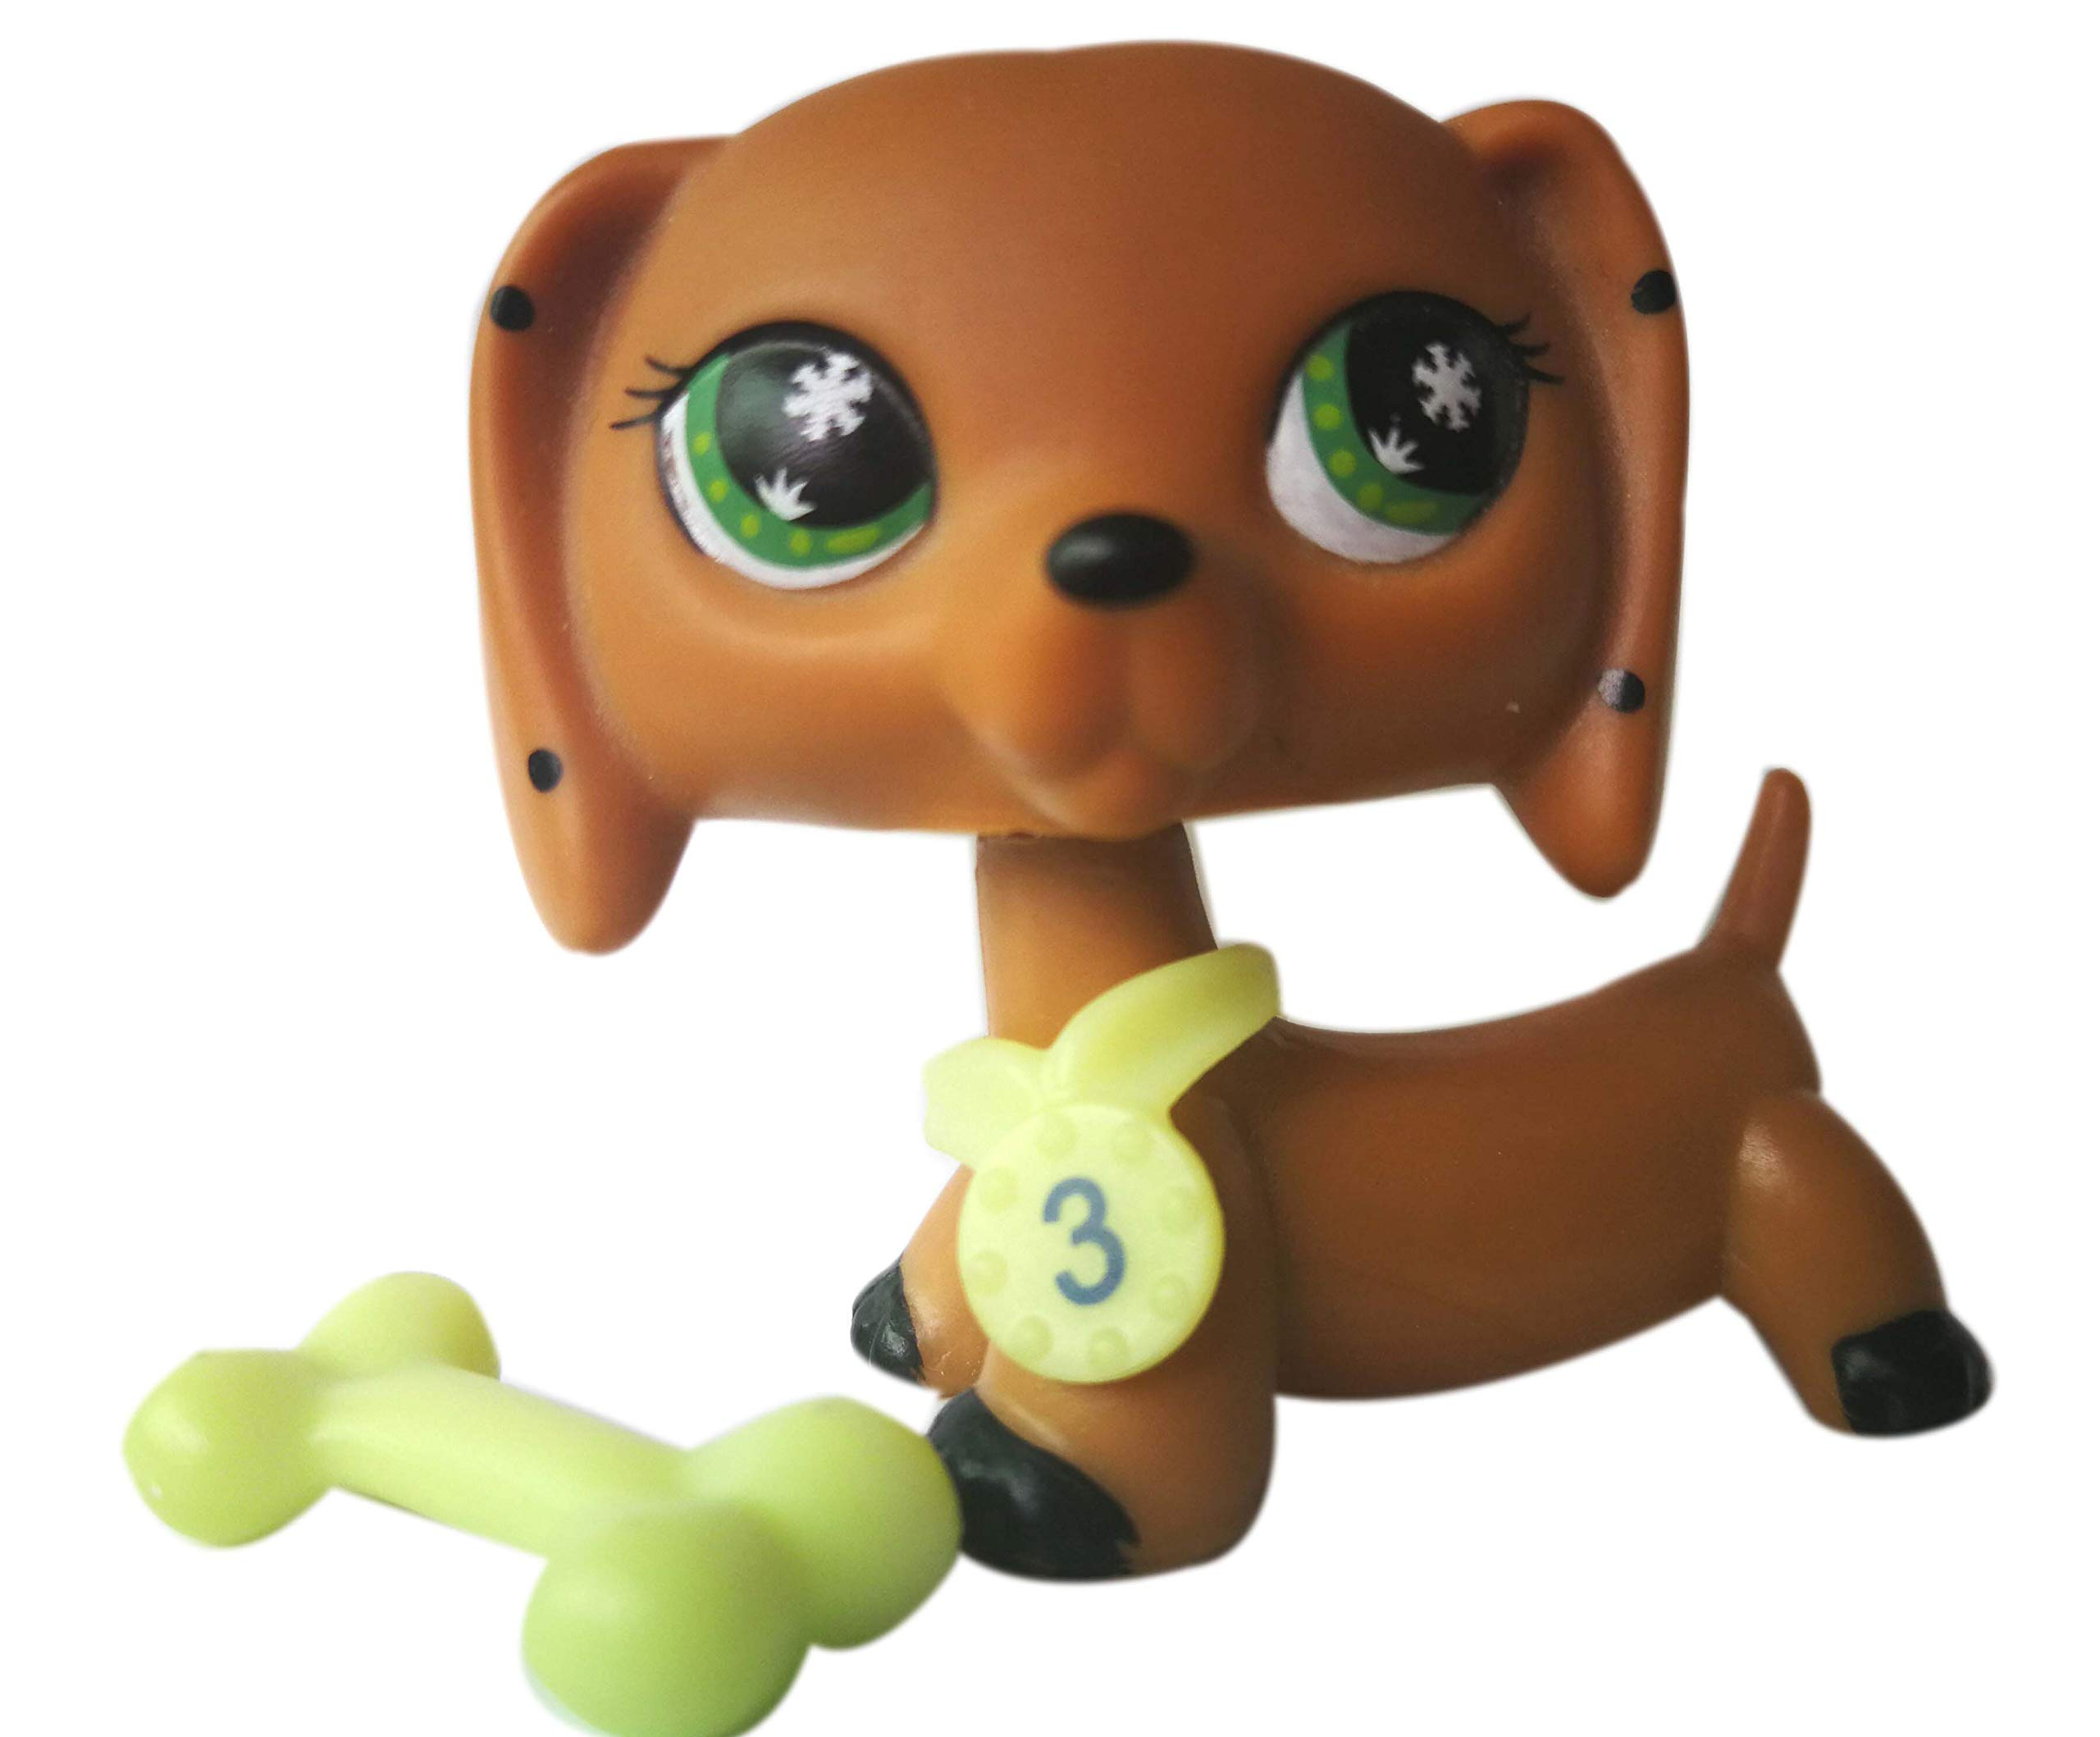 LPSOLD LPS Dachshund Monopoly Brown Green Eyes Dog Puppy with Accessories Action Cartoon Figure Collection Boy Girl Kid Gift